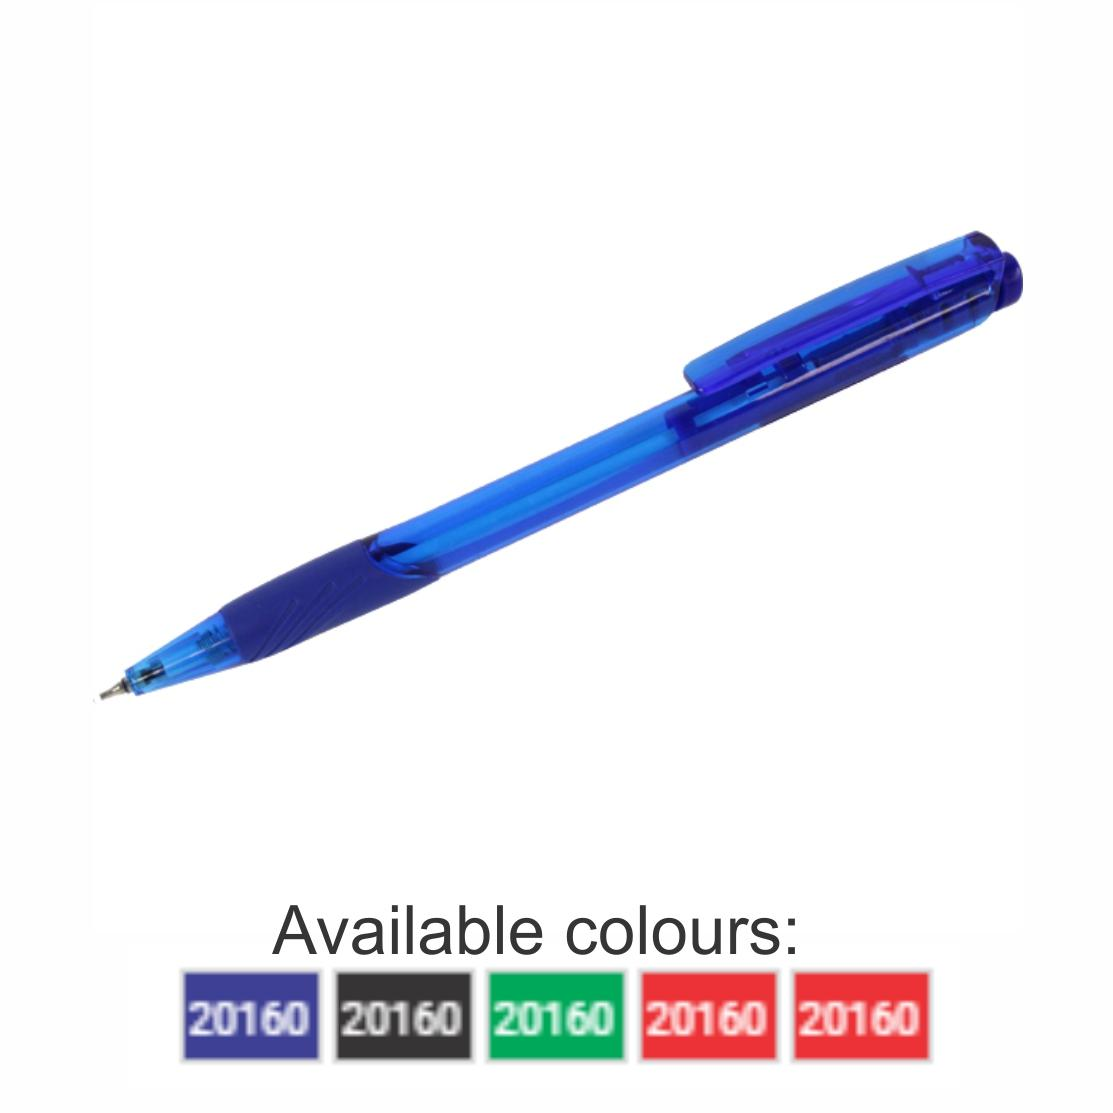 Grover Pen With 1 Colour Print